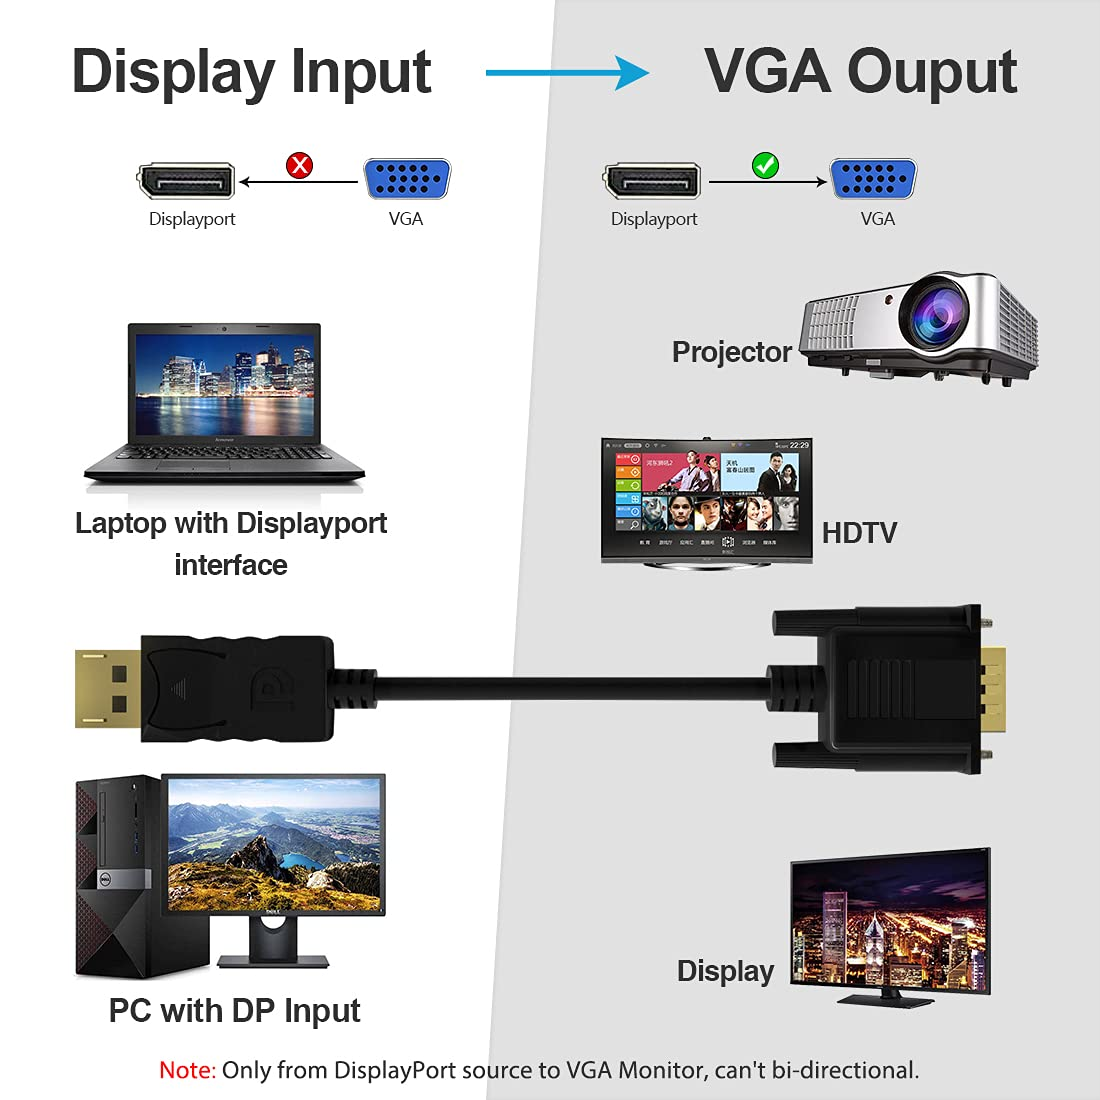 DisplayPort to VGA, FOBOIU DisplayPort to VGA Adapter 6 Feet DP to VGA Cable Connects DP Port from Desktop or Laptop to Monitor or Projector with VGA Port